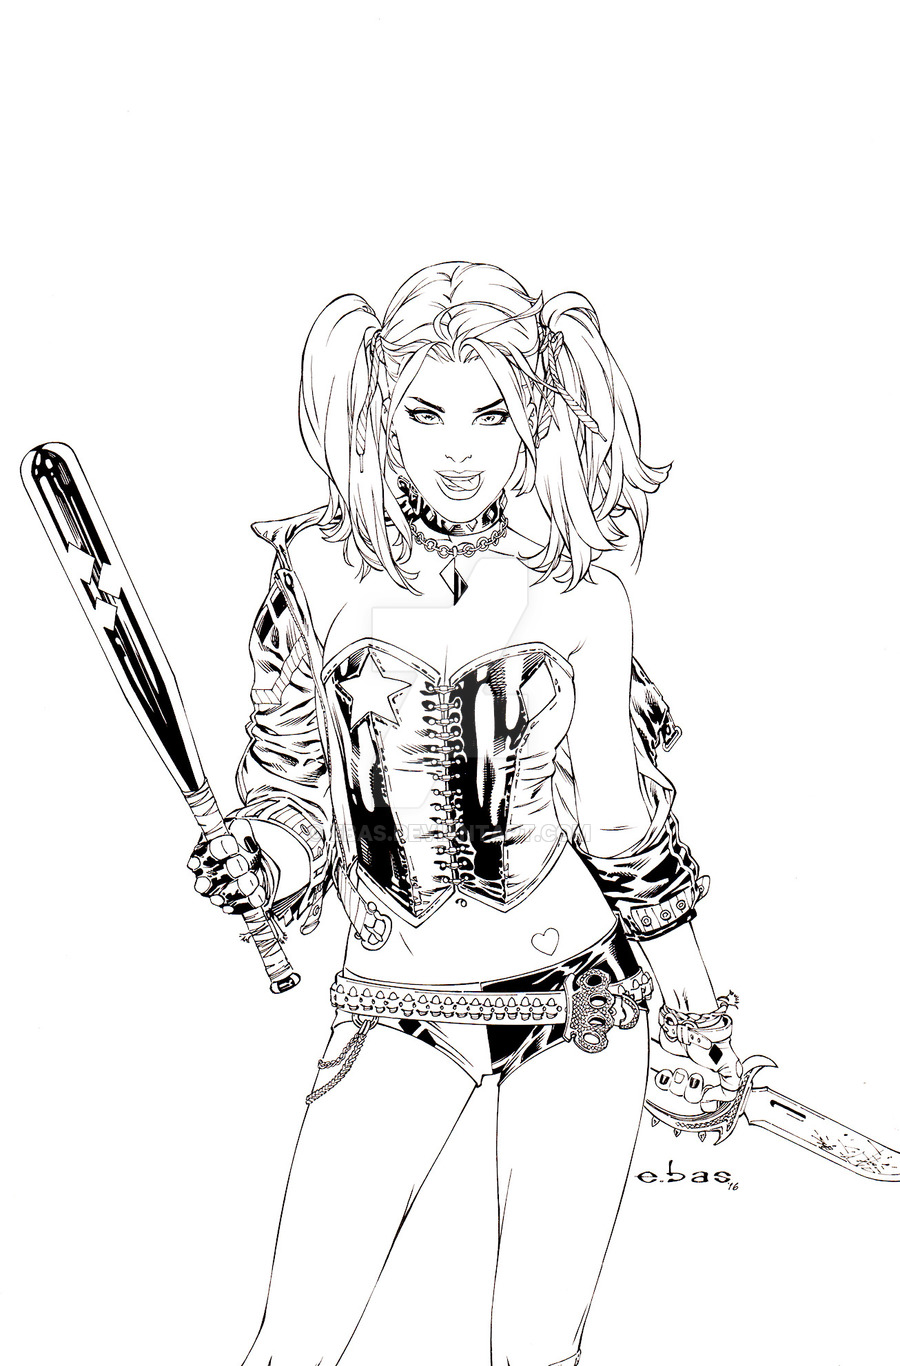 Harley quinn clipart outline. Drawing at getdrawings com